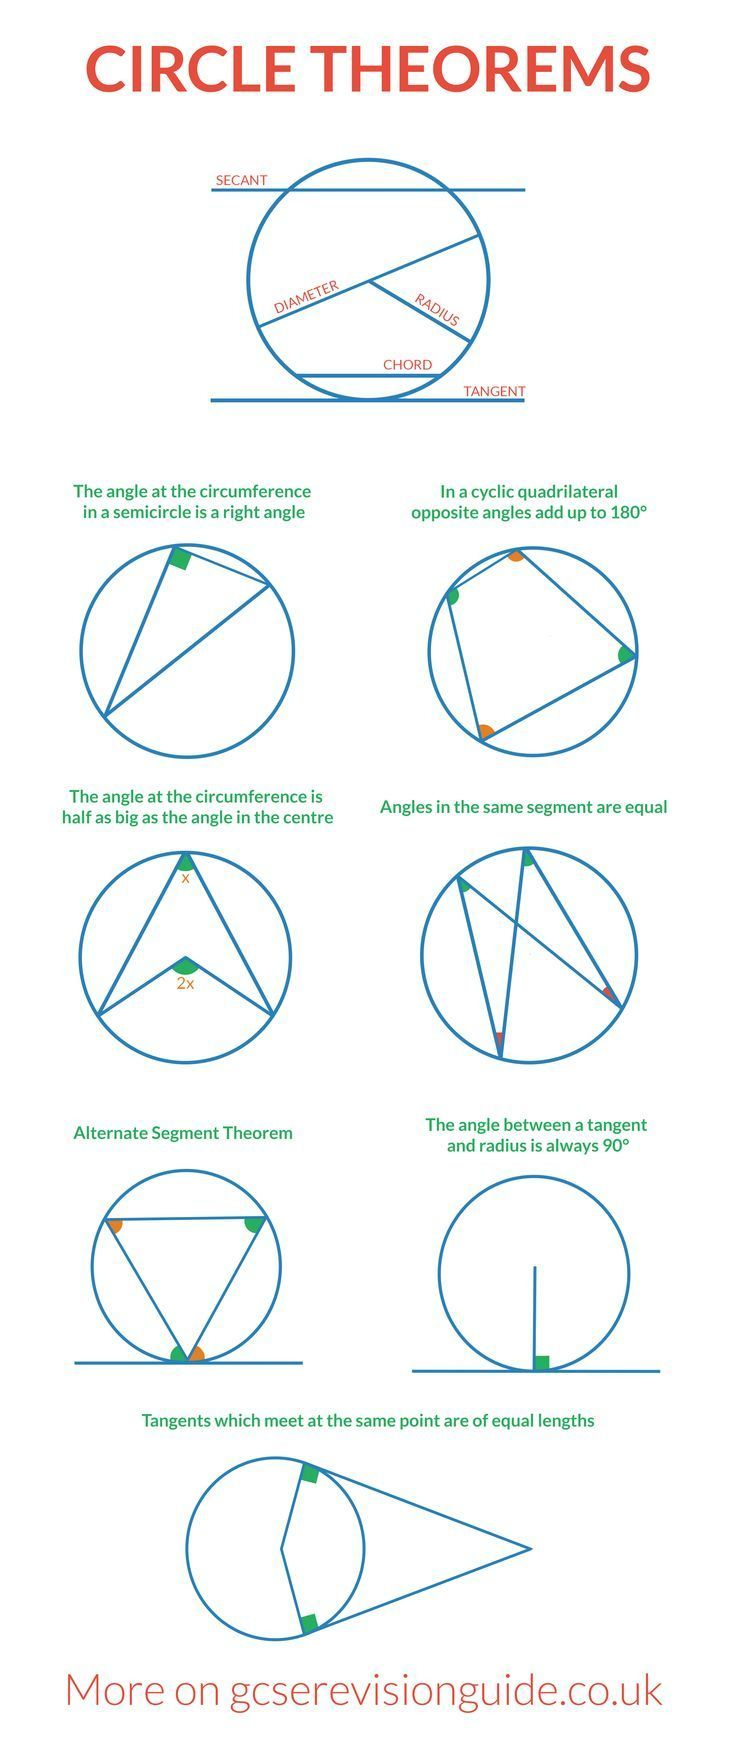 Circle Theorems For Gcse More Information And Maths Revision On Http Www Gcserevisionguide Co Uk Circle Theorems Math Formulas Gcse Math